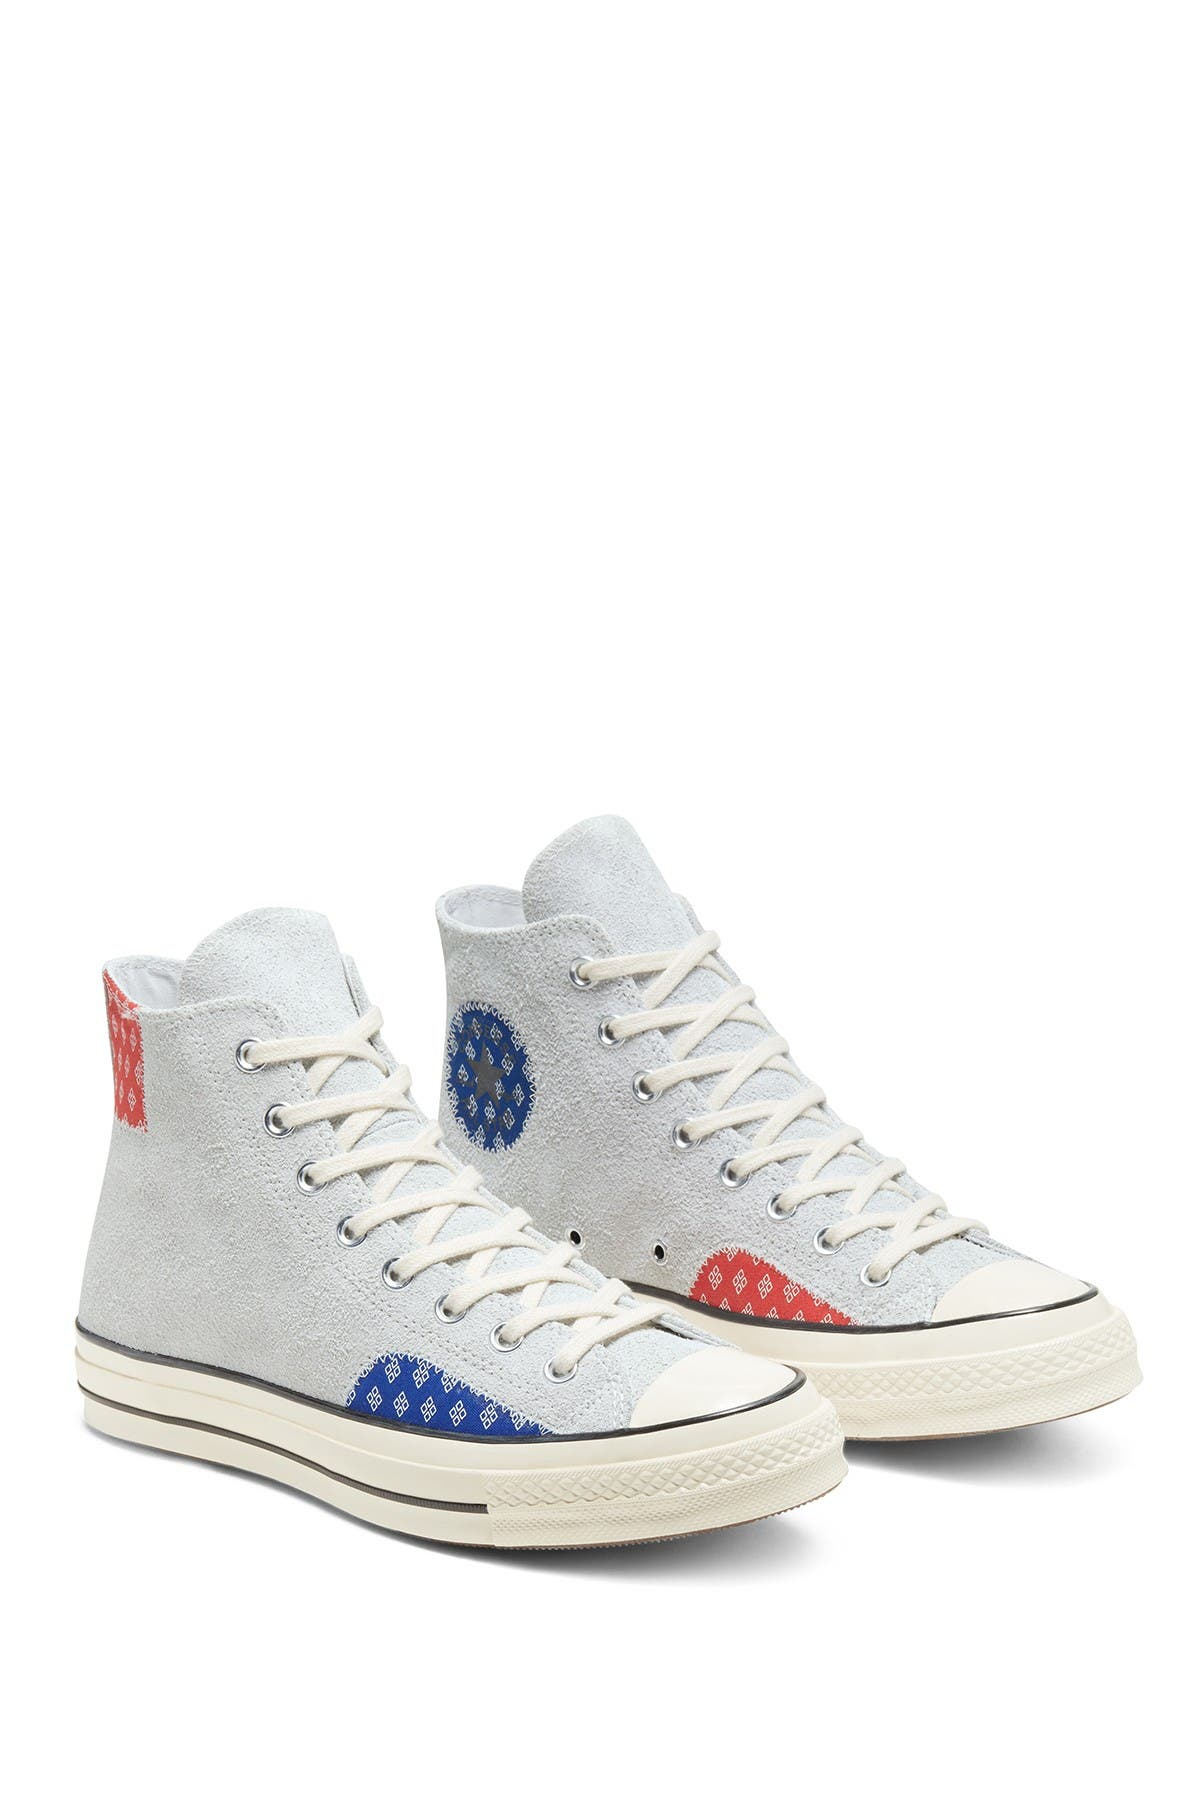 Image of Converse Chuck 70 Photon Patchwork Dust Hi-Top Sneaker